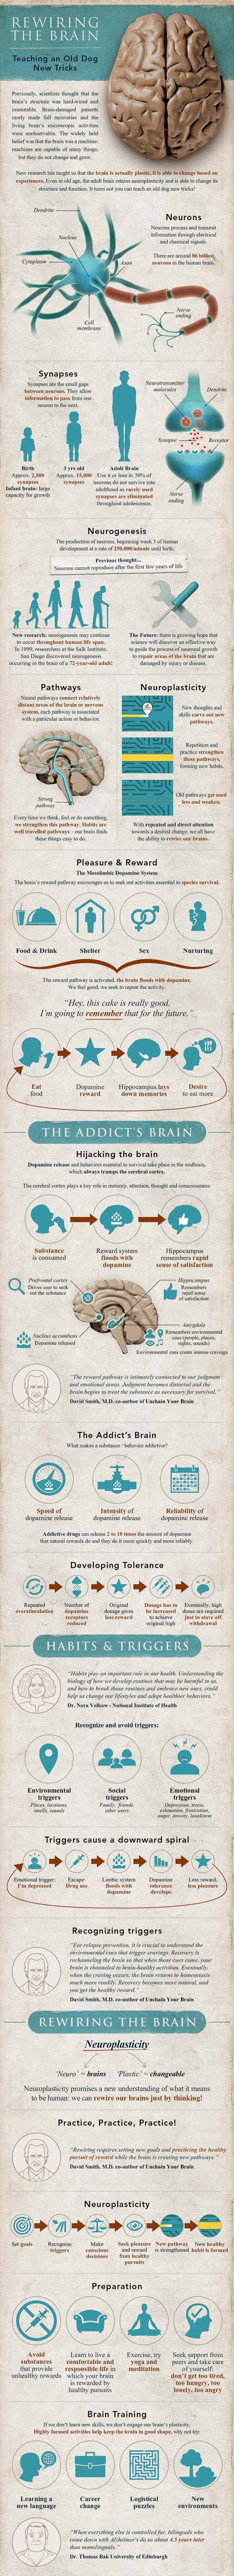 This Nifty Infographic Is a Great Introduction to Neuroplasticity and Cognitive Therapy | Big Think